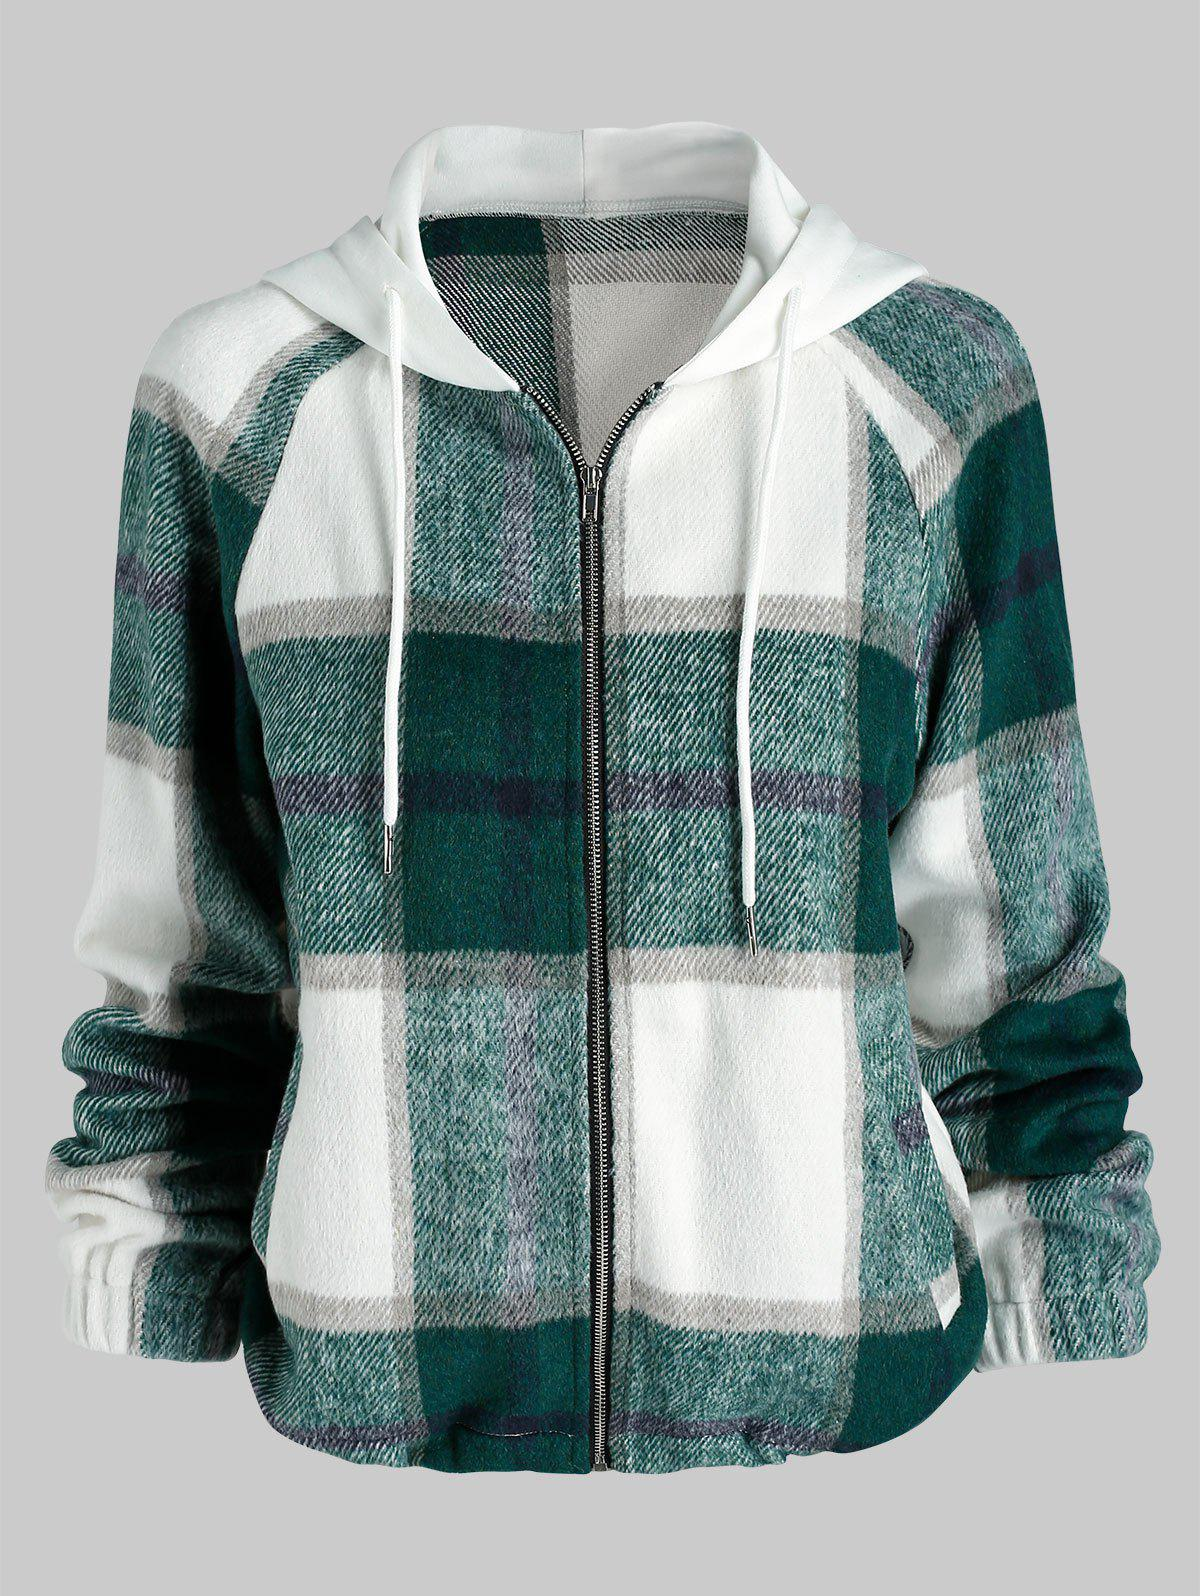 Hooded Plaid Pattern Wool Blend Jacket - multicolor A M